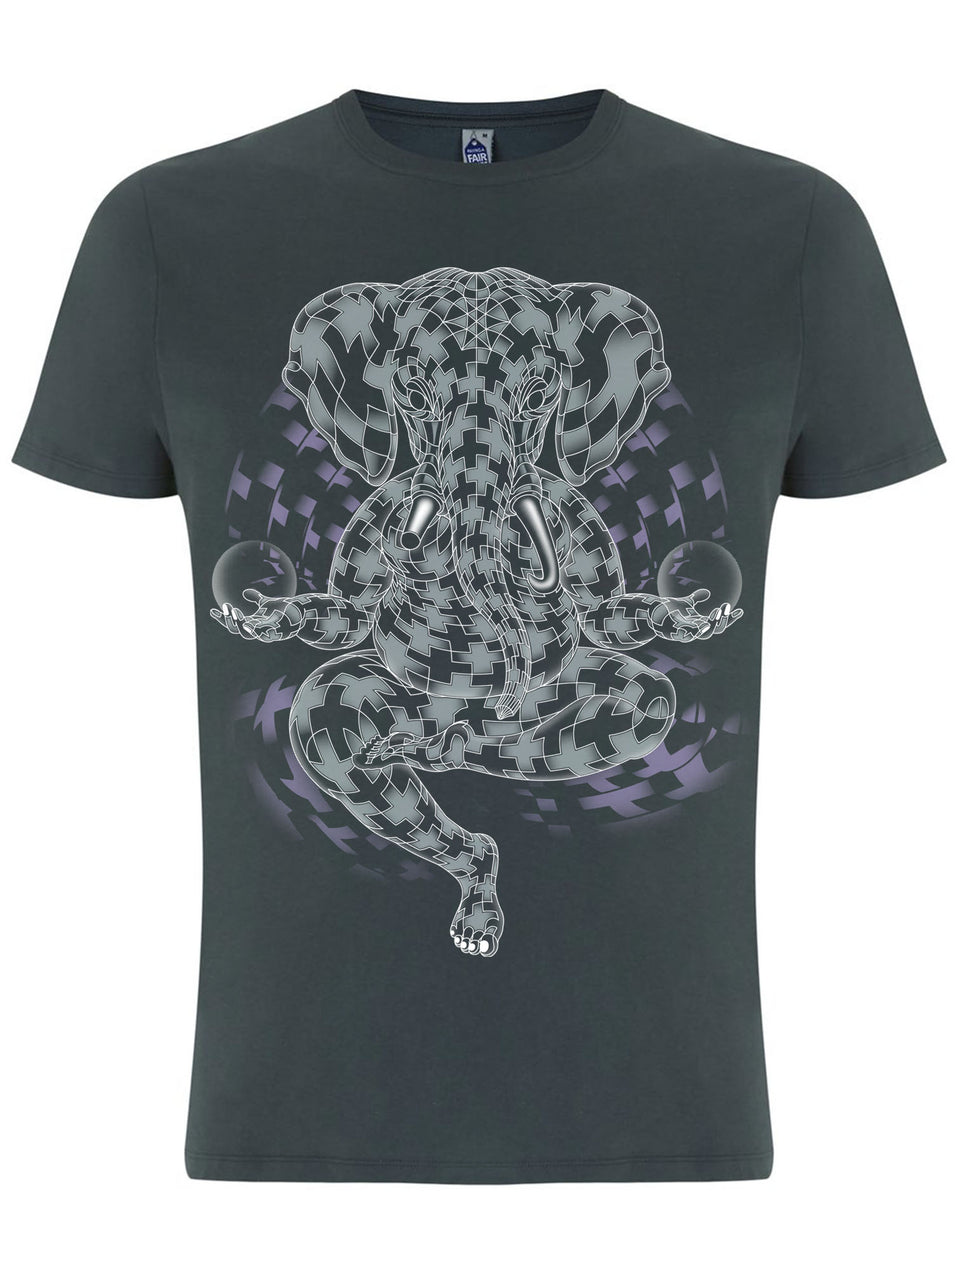 Ganesher Vibration Made To Order Men T-Shirt - Light Charcoal